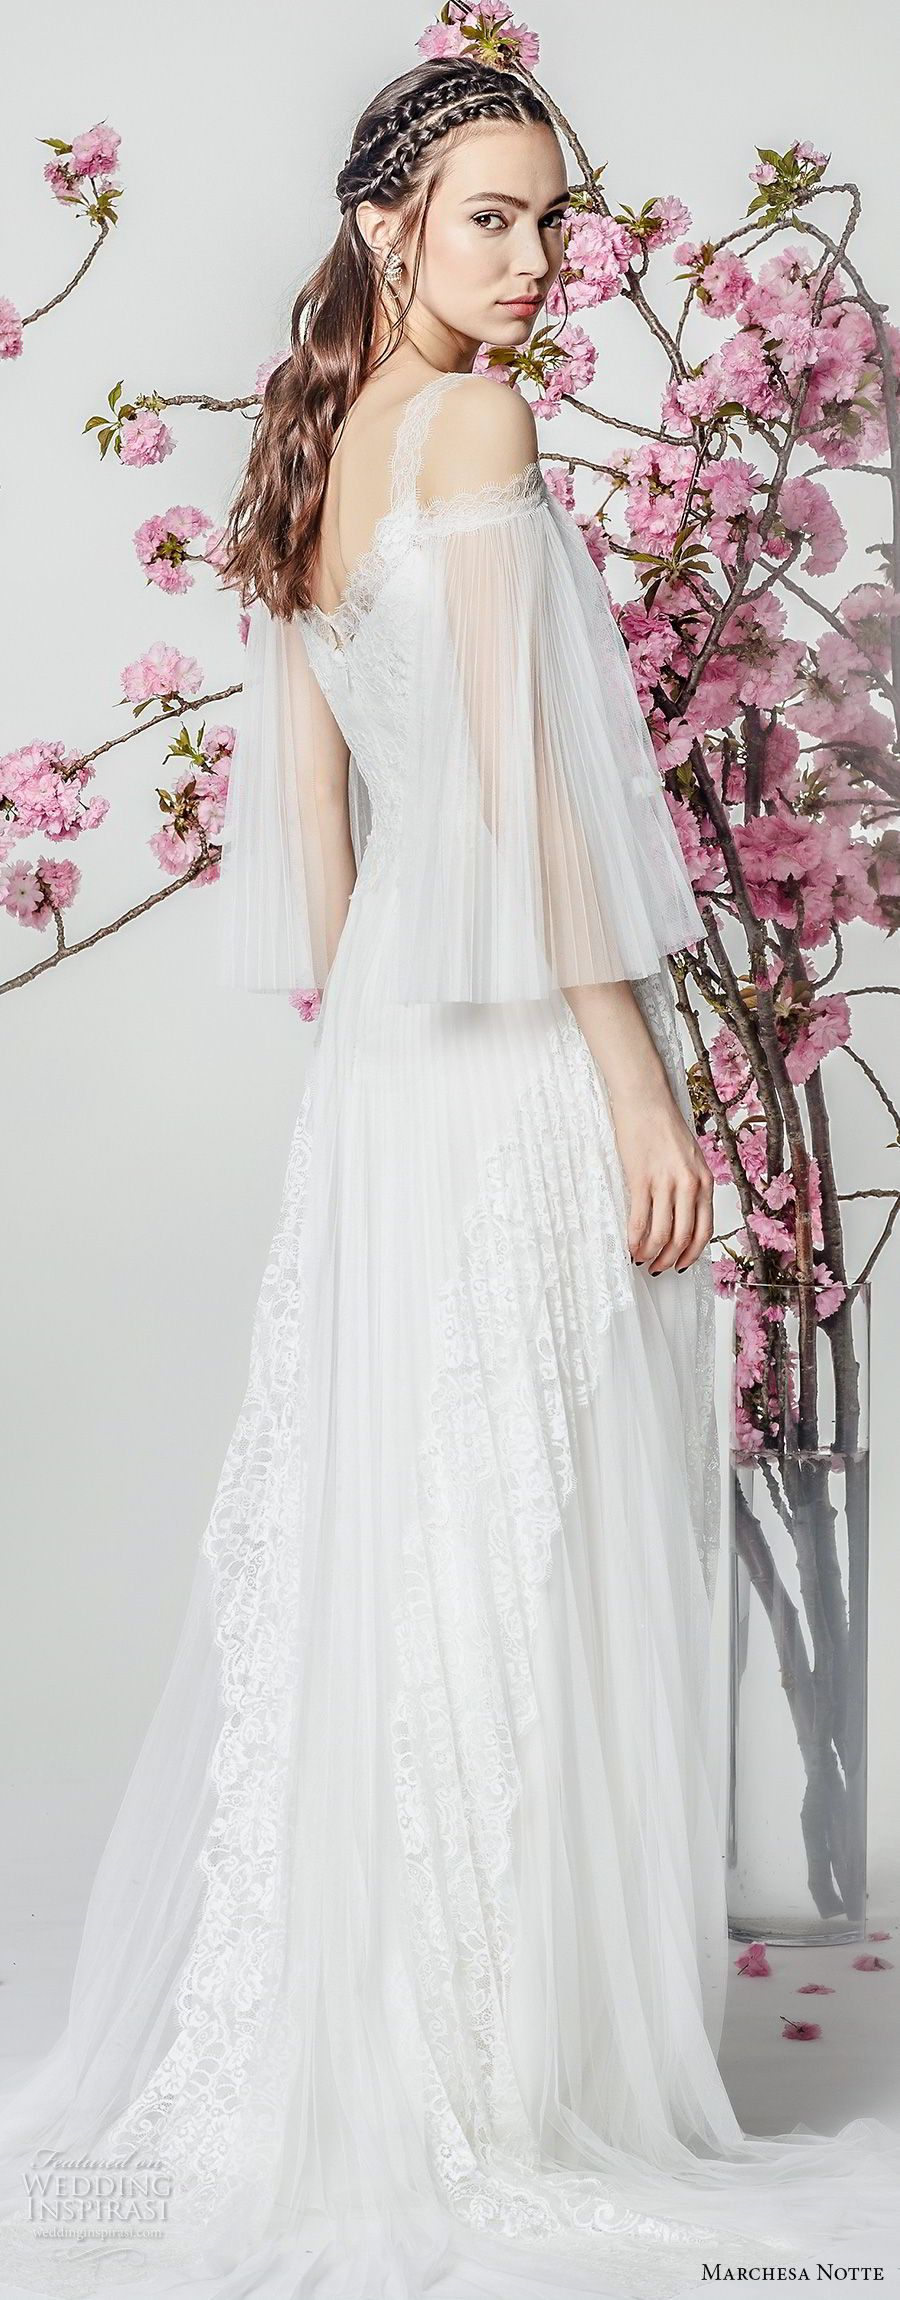 Marchesa notte spring wedding dresses marchesa romantic and